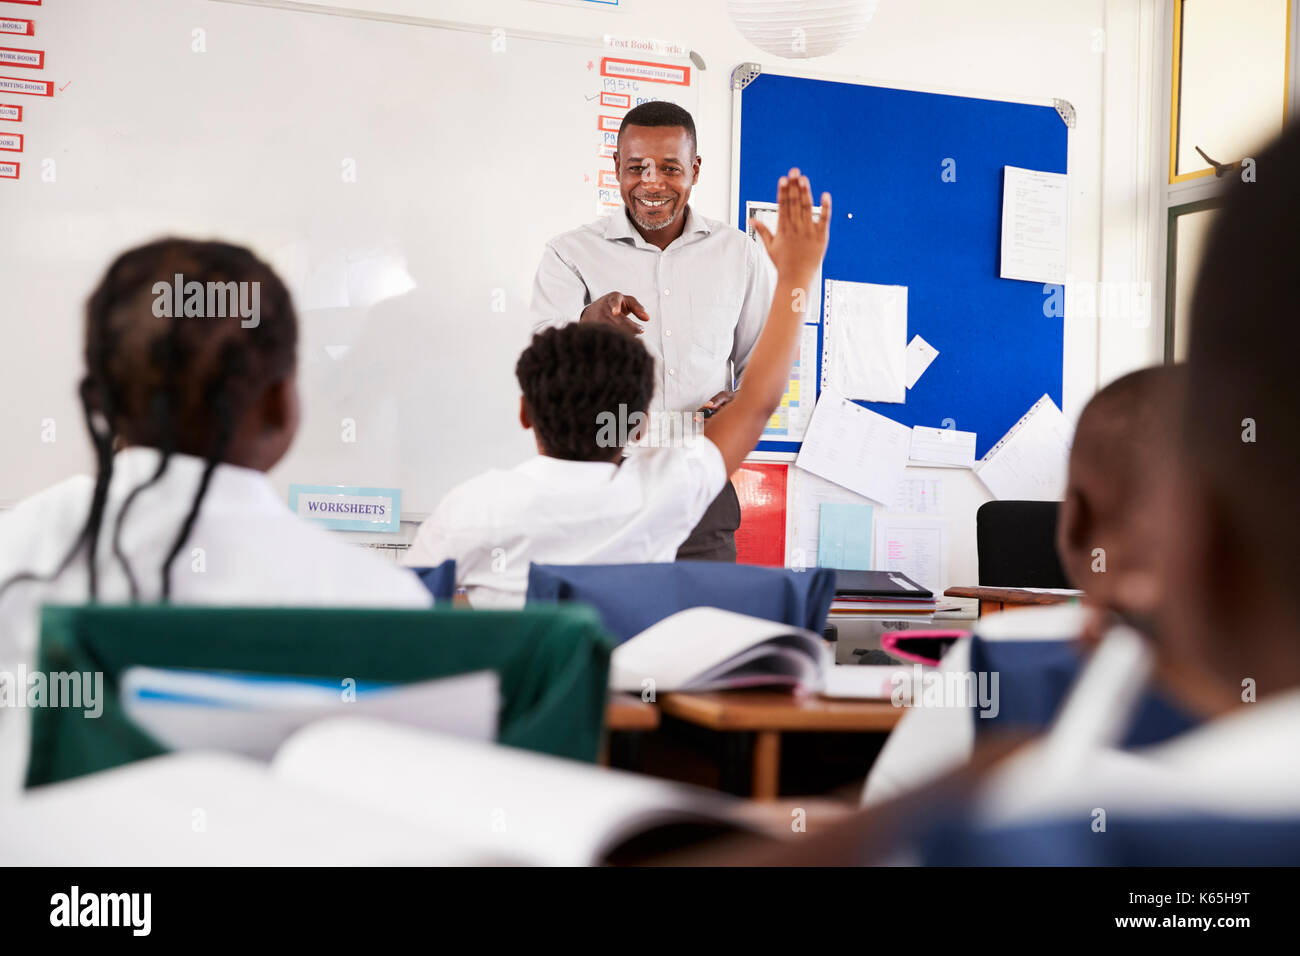 One child raising hand in an elementary school lesson - Stock Image